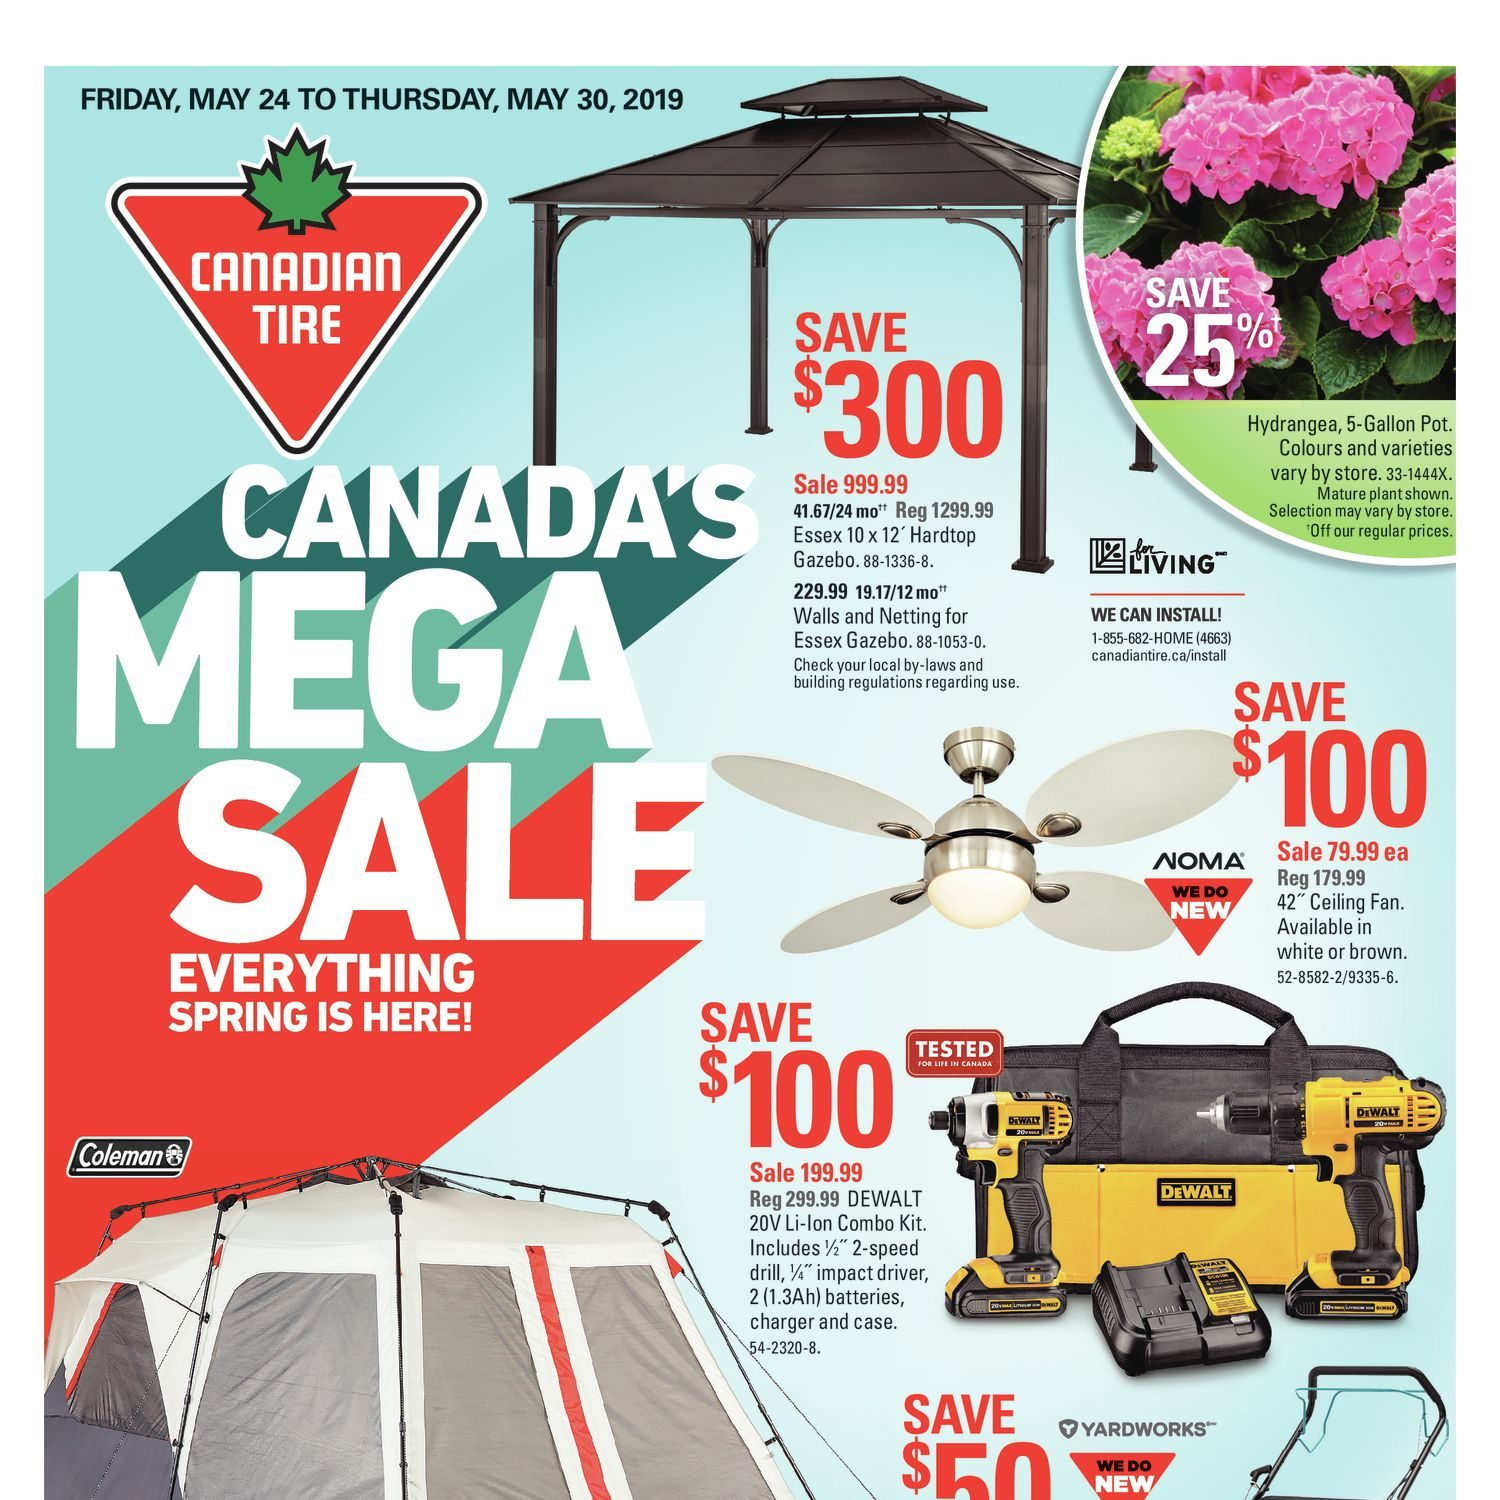 Canadian Tire Weekly Flyer - Weekly - Canada's Mega Sale - May 24